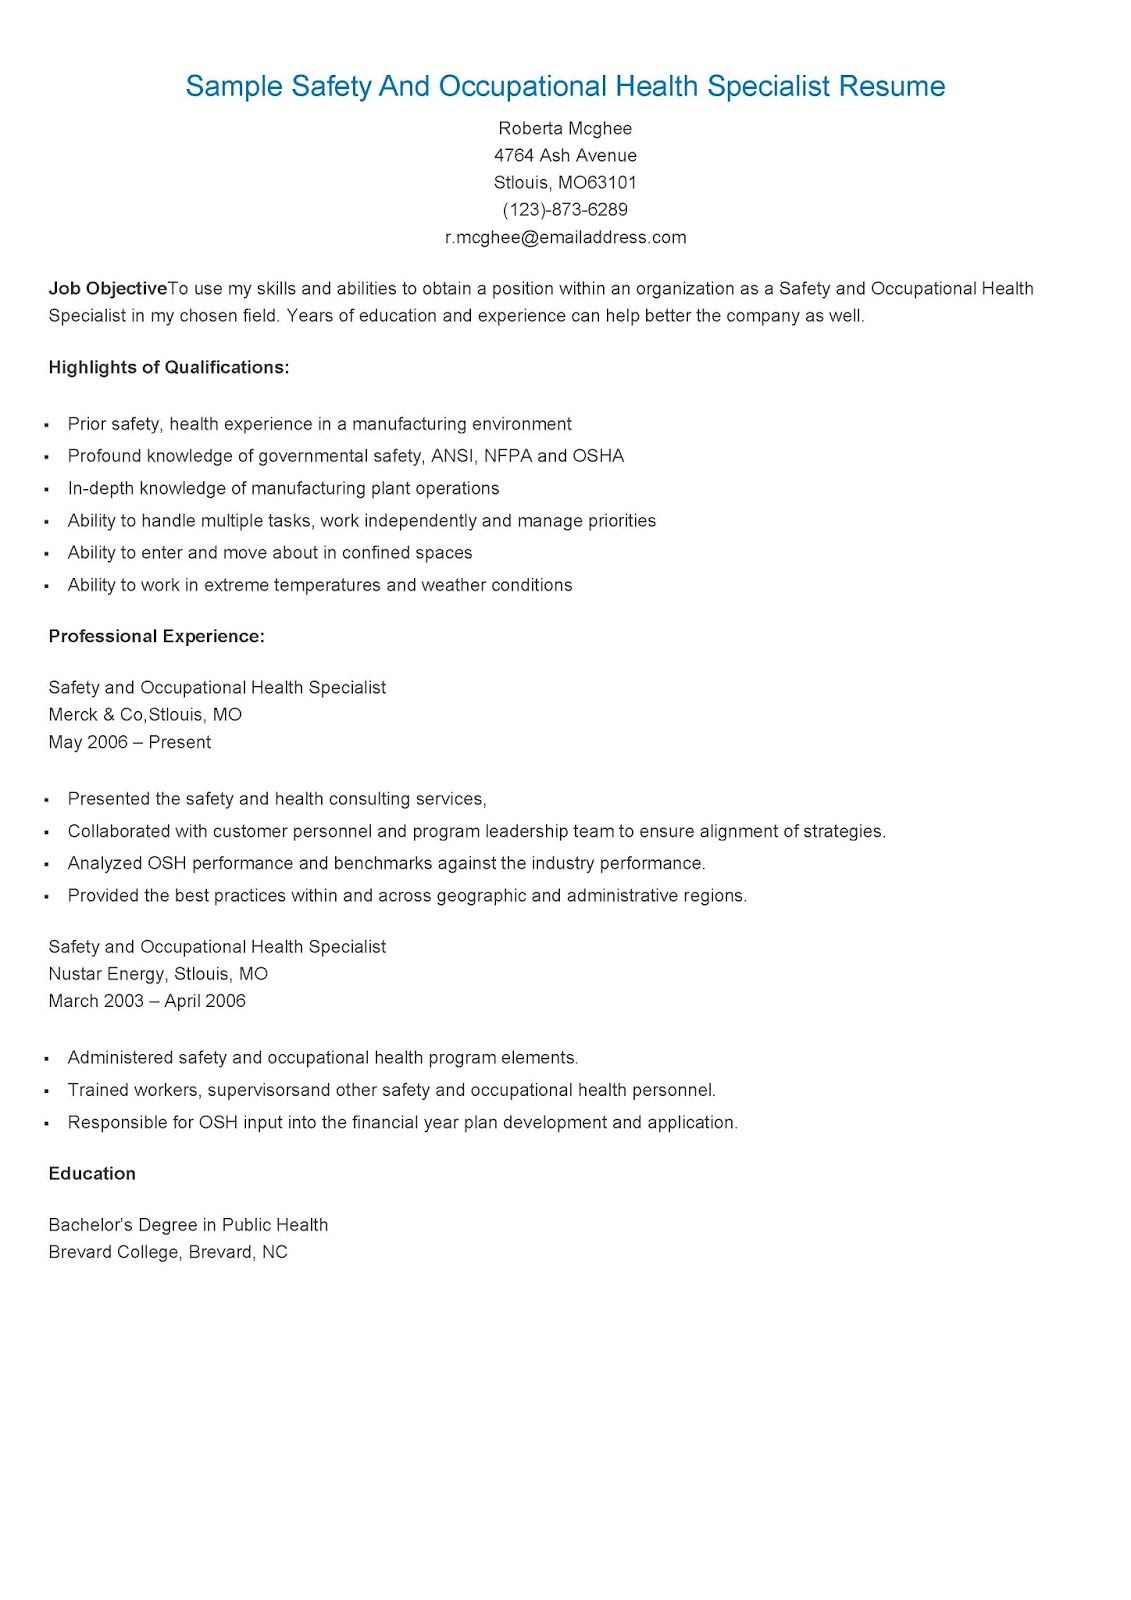 Sample Safety And Occupational Health Specialist Resume  Resame